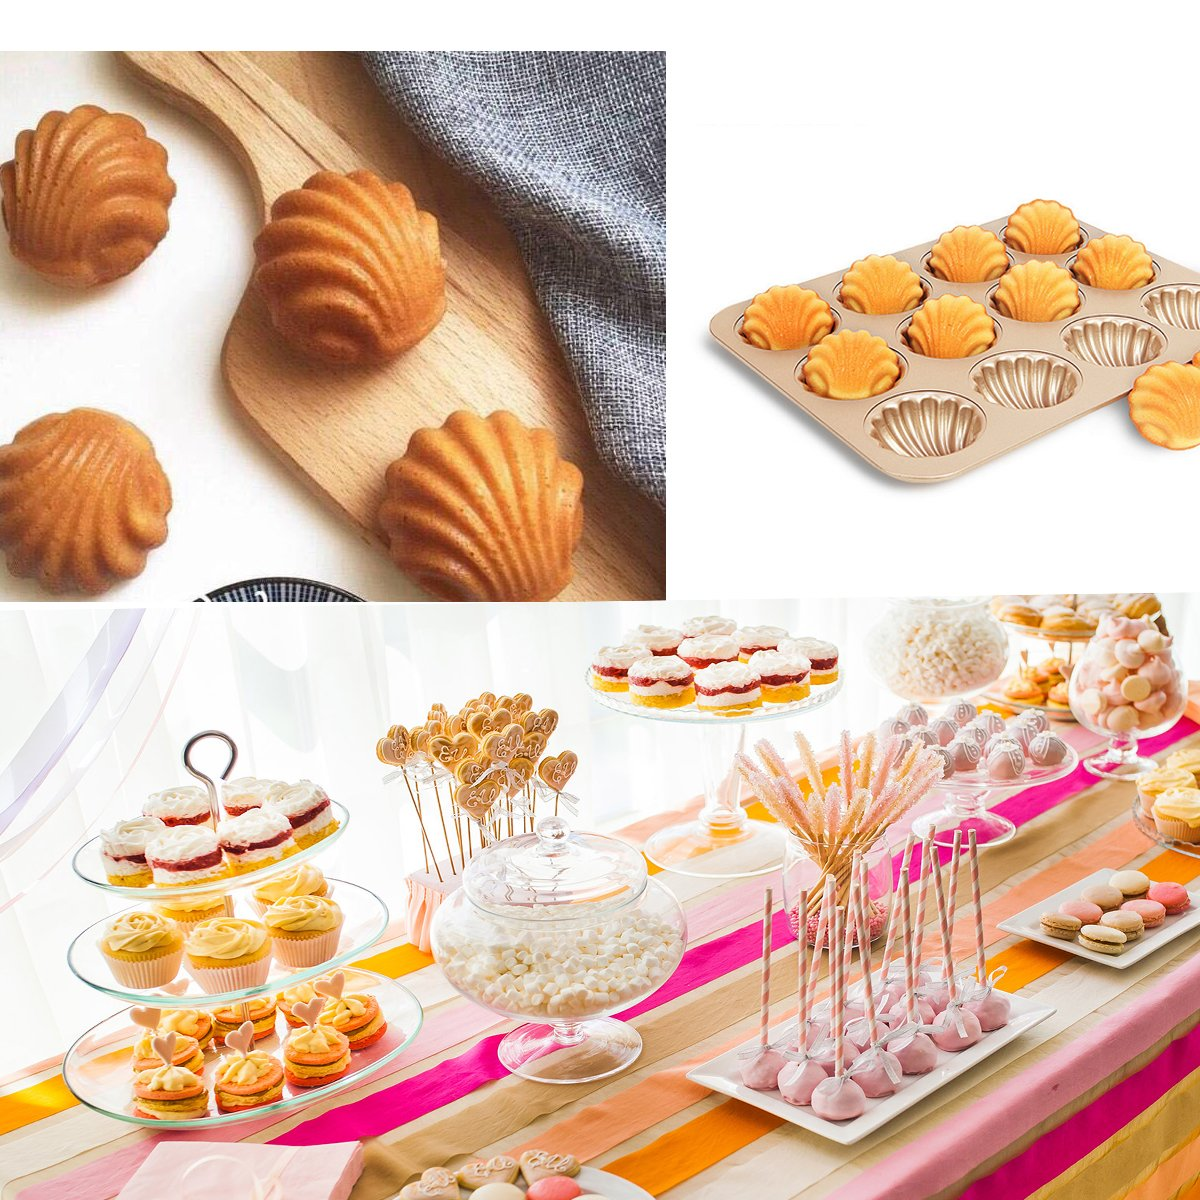 Madeleine Pans Baking Shell Mould Oversized Madeleine Cake Pan 12-cup Non Stick Gold Bakeware(madeleine pan) by Monfish